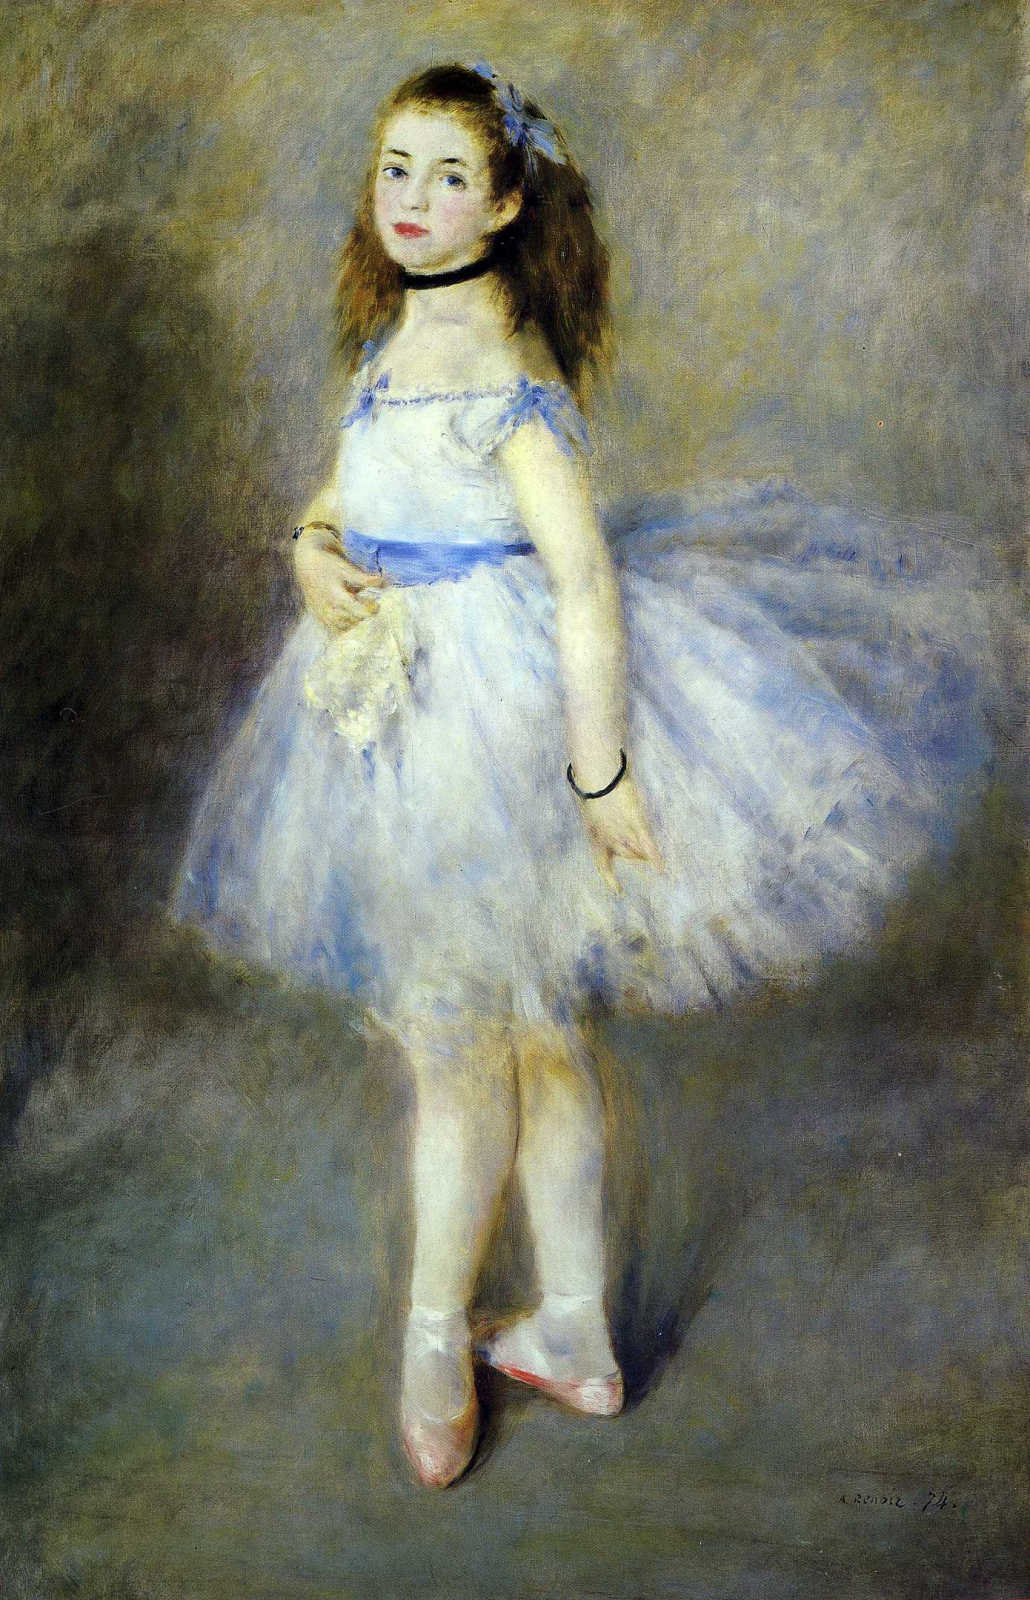 http://artmight.com/albums/artists/Pierre-Auguste-Renoir/Dancer-1874.jpg